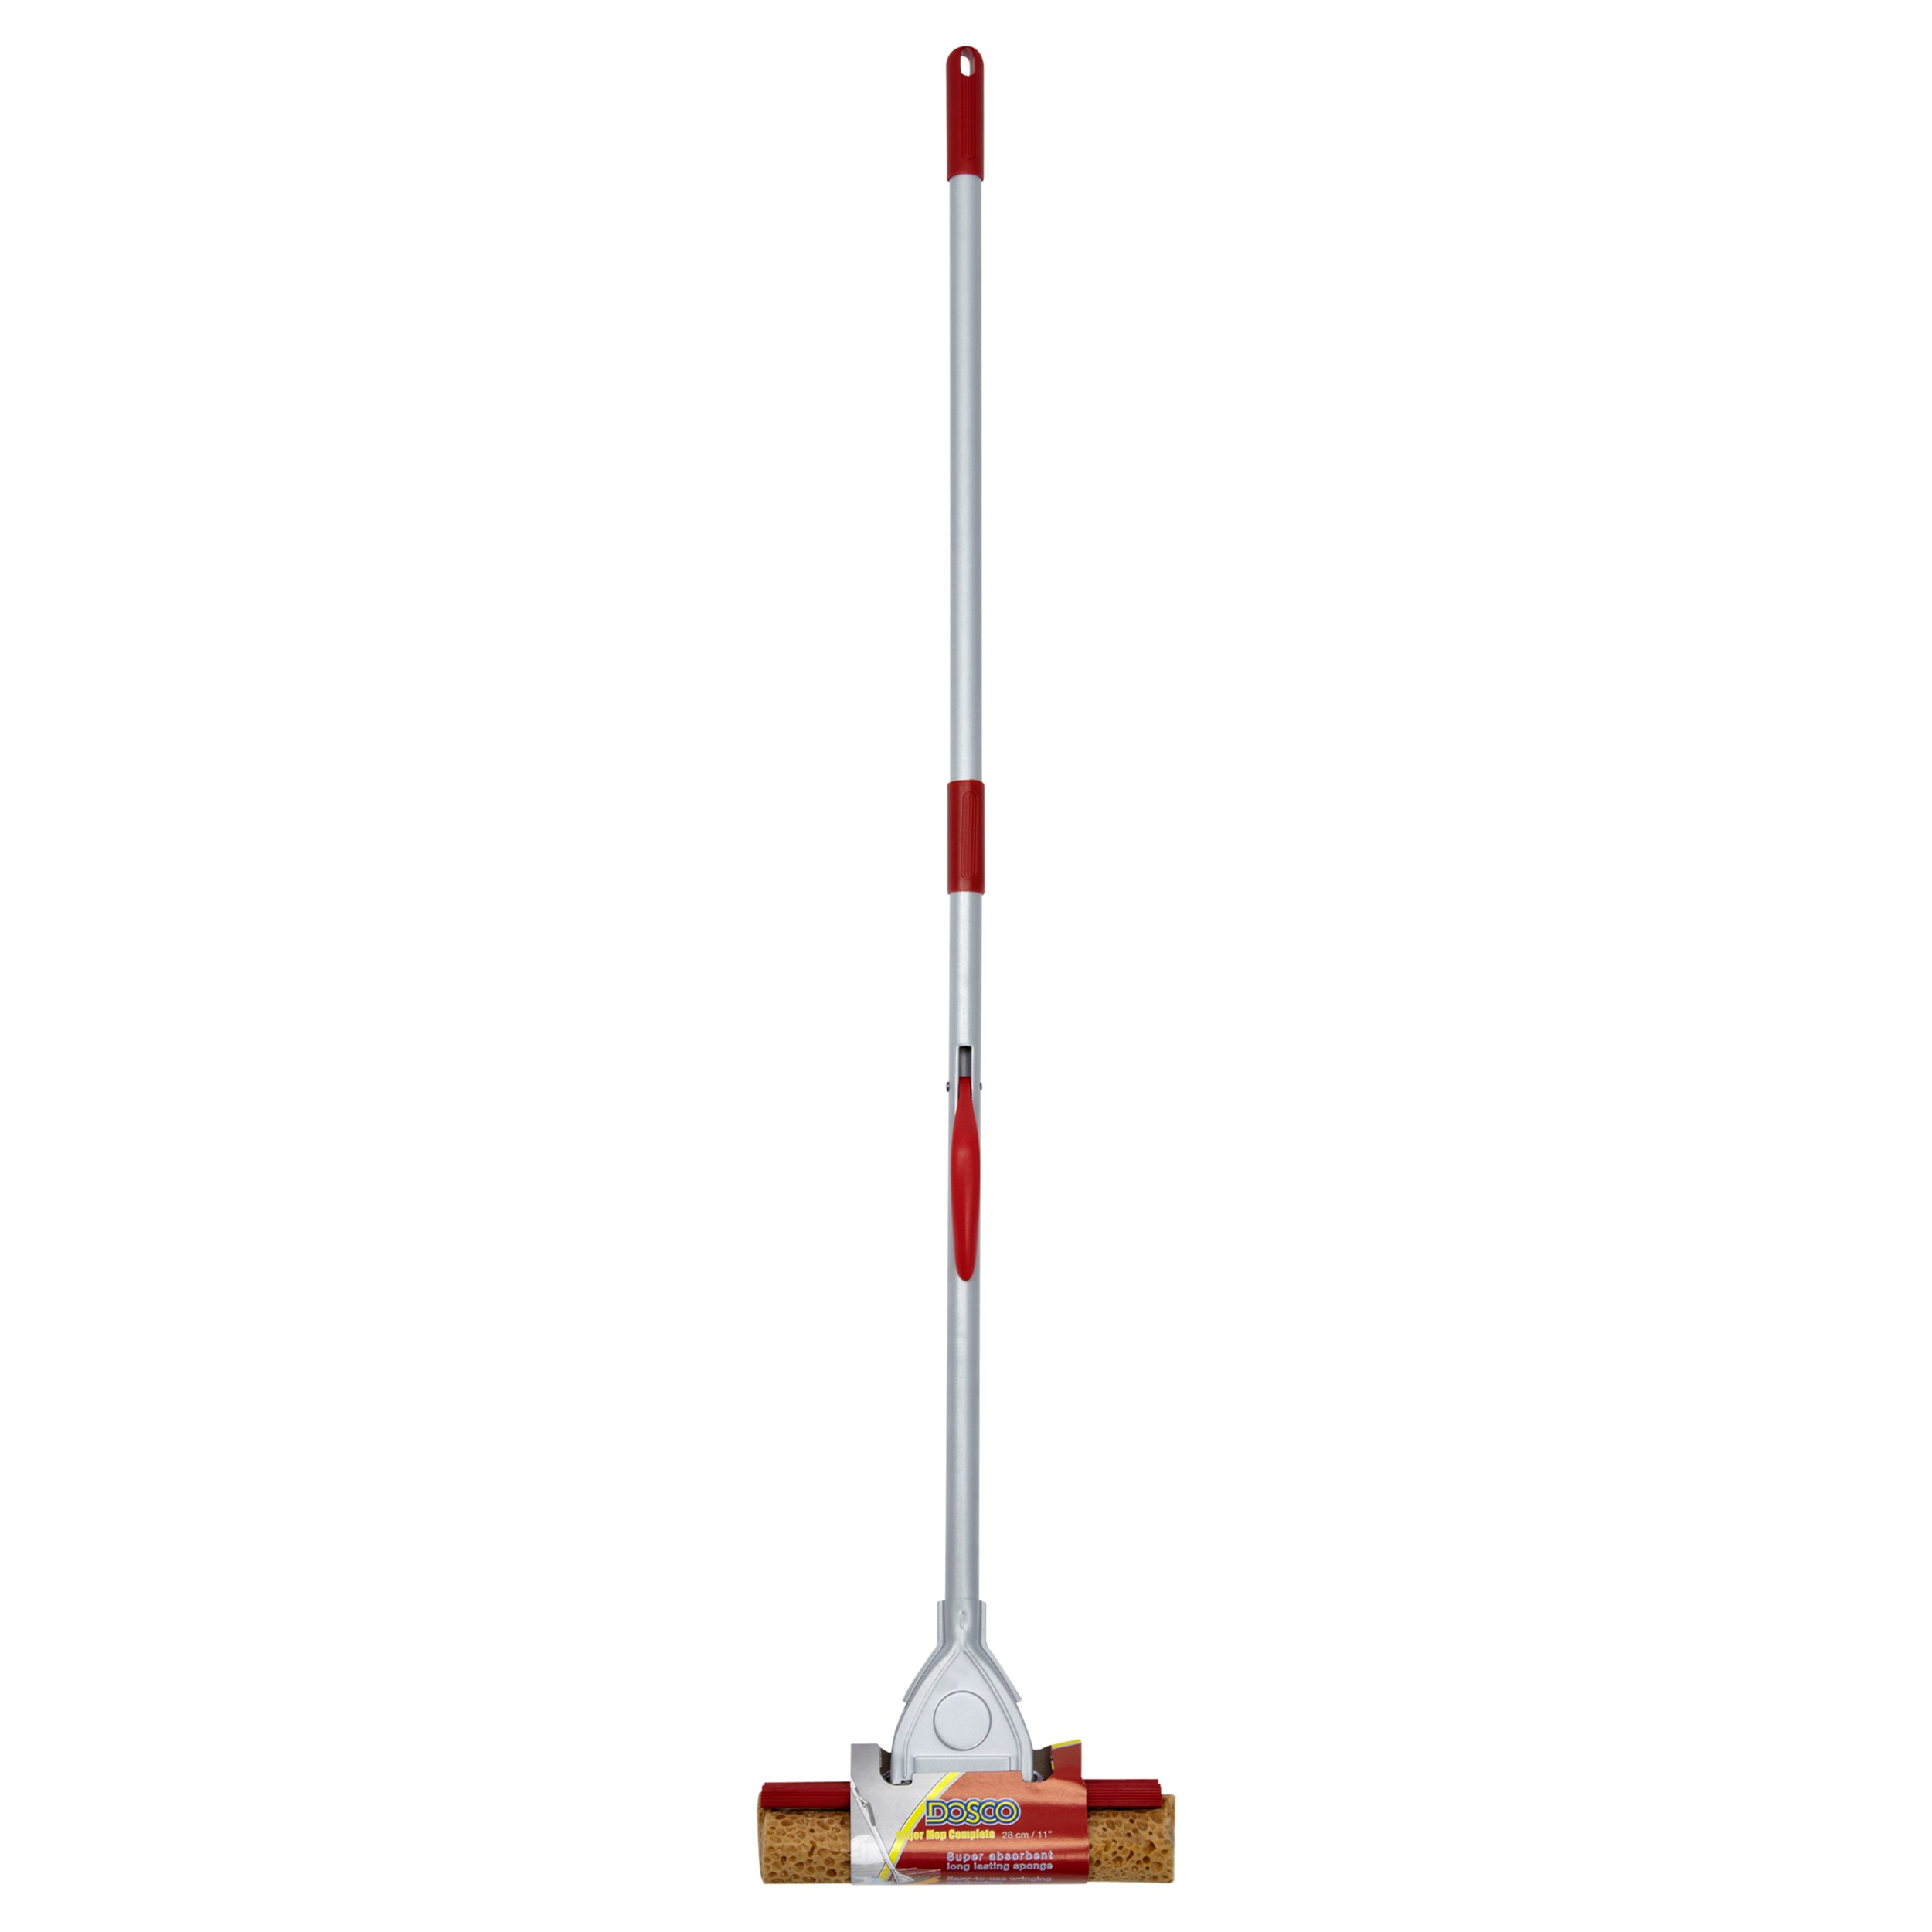 Dosco Sponge Mop Amp Handle 11in Mops Amp Brooms Topline Ie